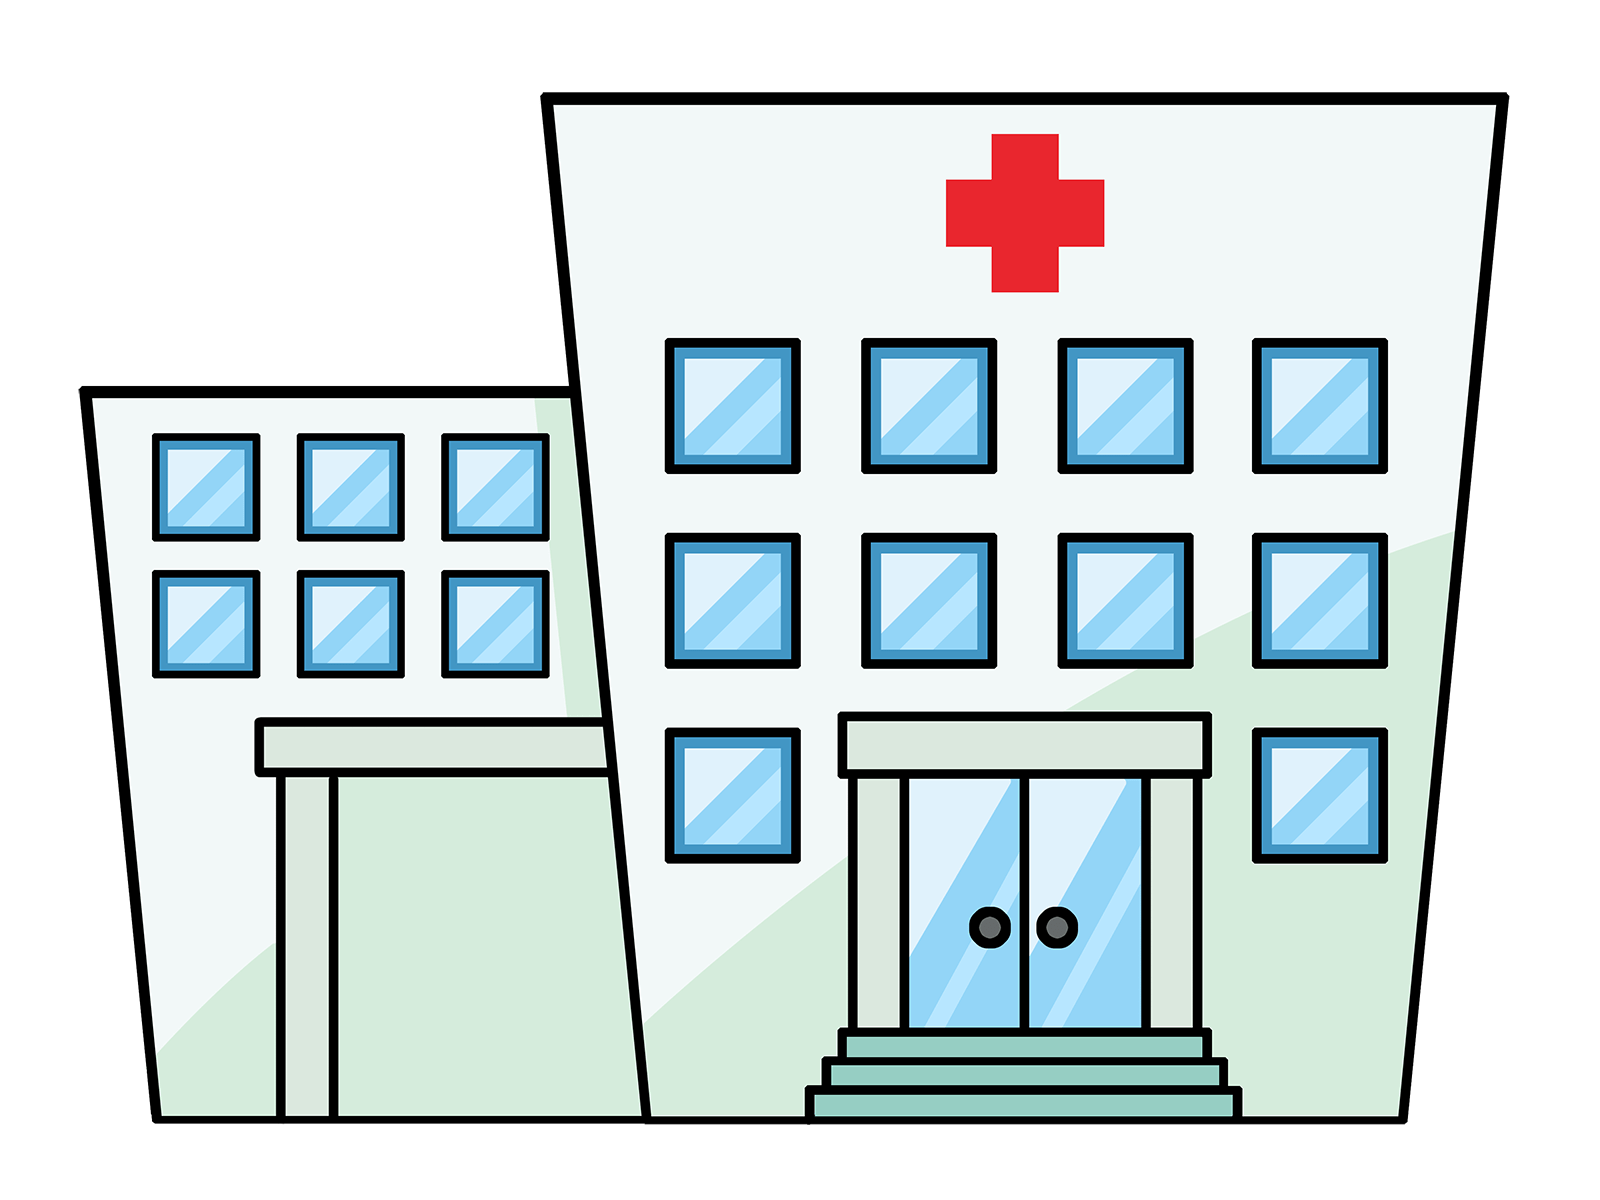 Drawing at getdrawings com. Clipart table hospital